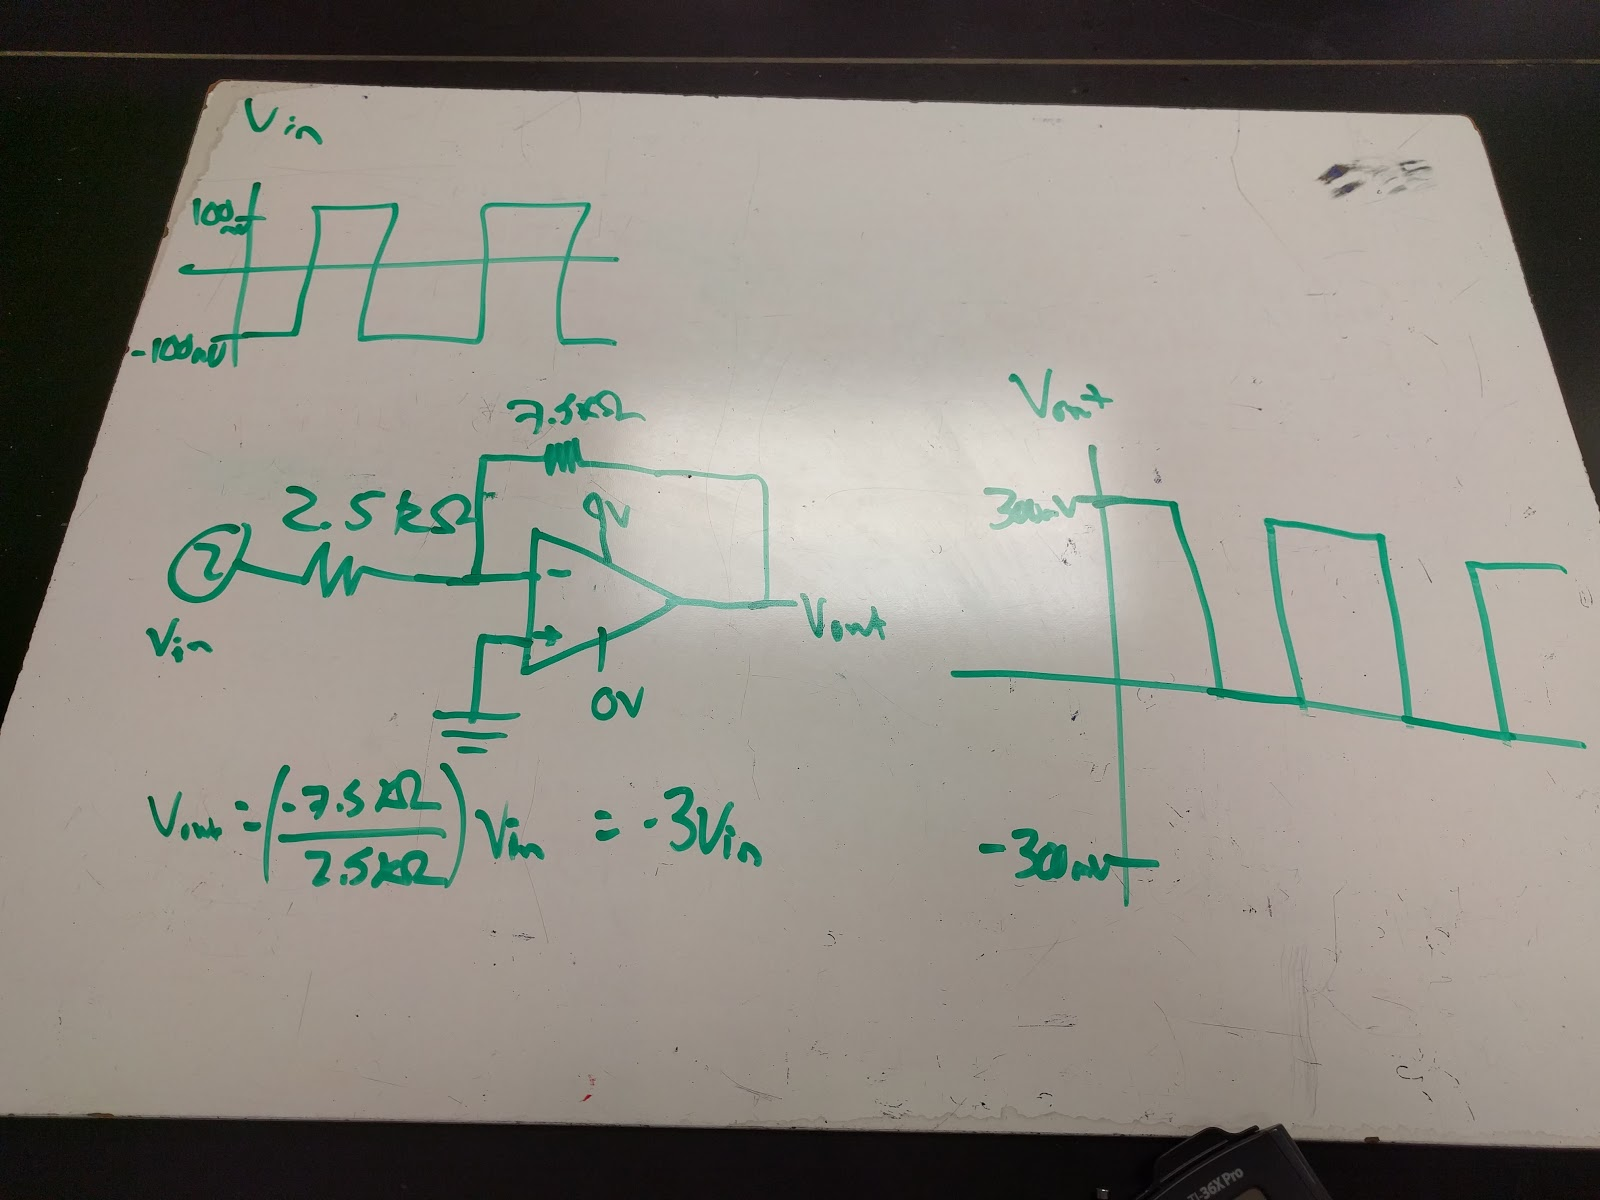 Inverting Summing Amplifier Calculations Operational Amplifiers Engineering Hynassman Day Op Amp Circuits And Non 1600x1200